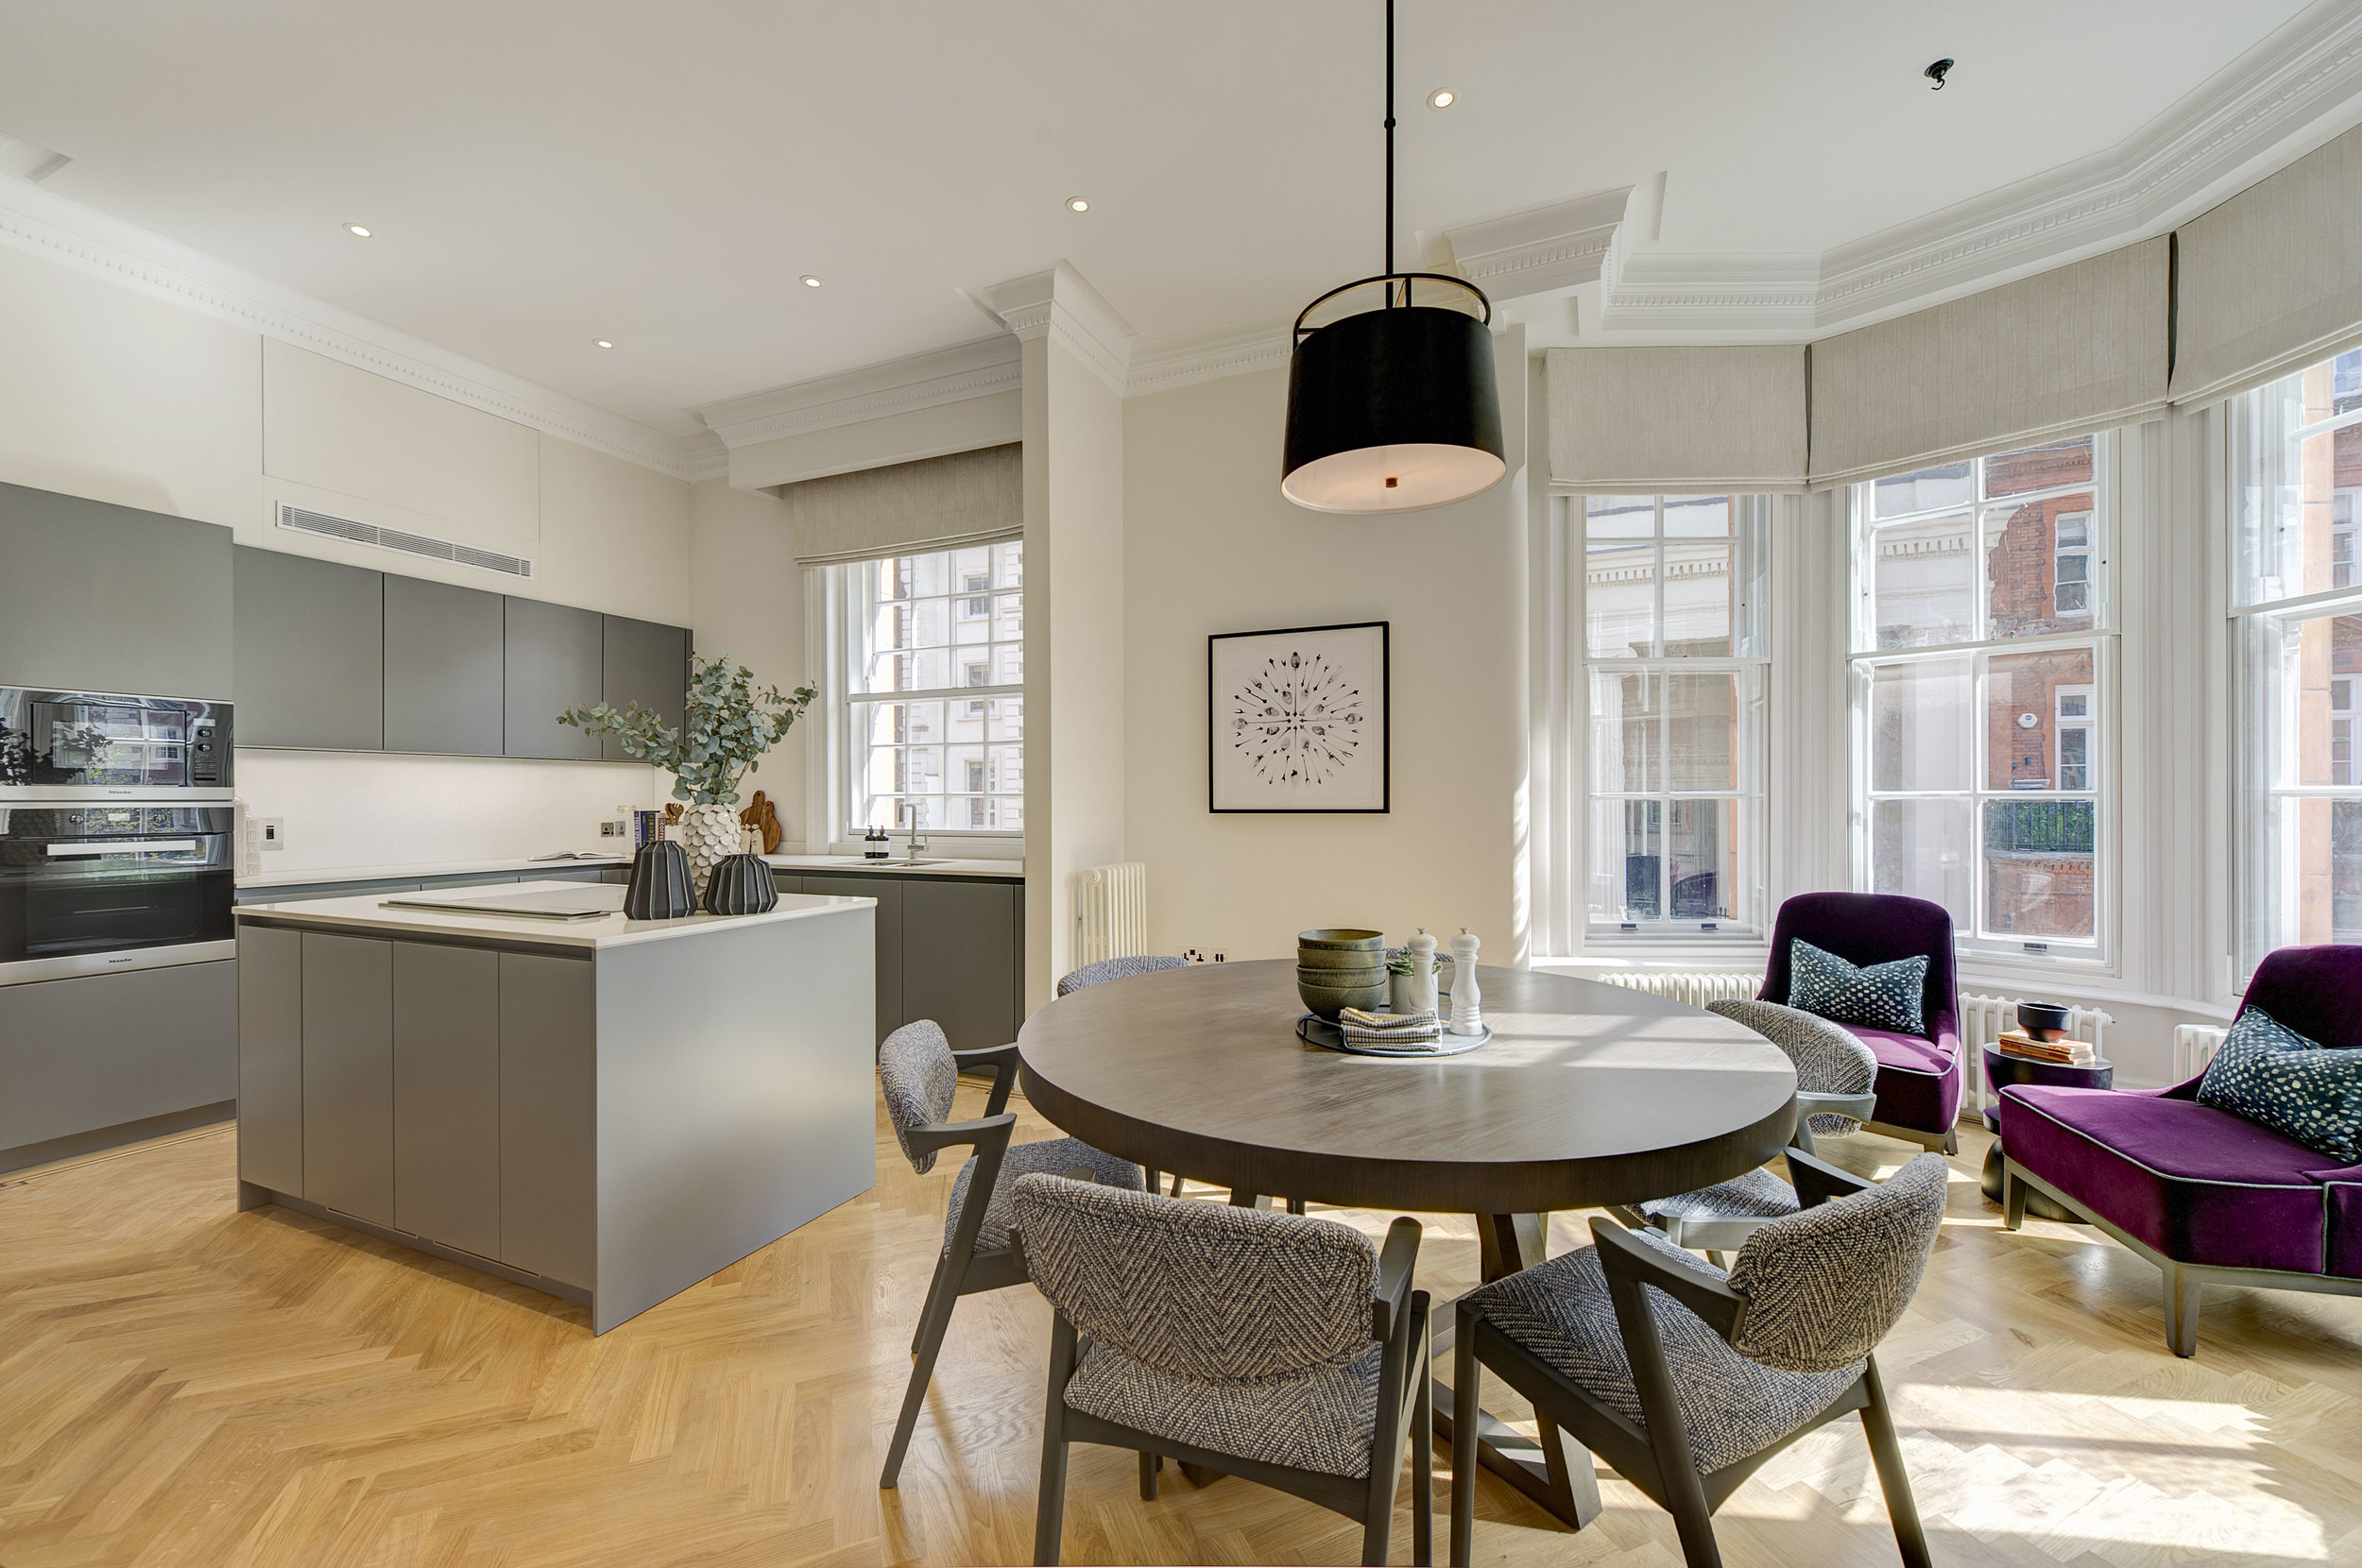 """""""This is an incredibly bright, newly refurbished flat with really good entertaining space and great views."""" - Charles Medina, Property Agent."""